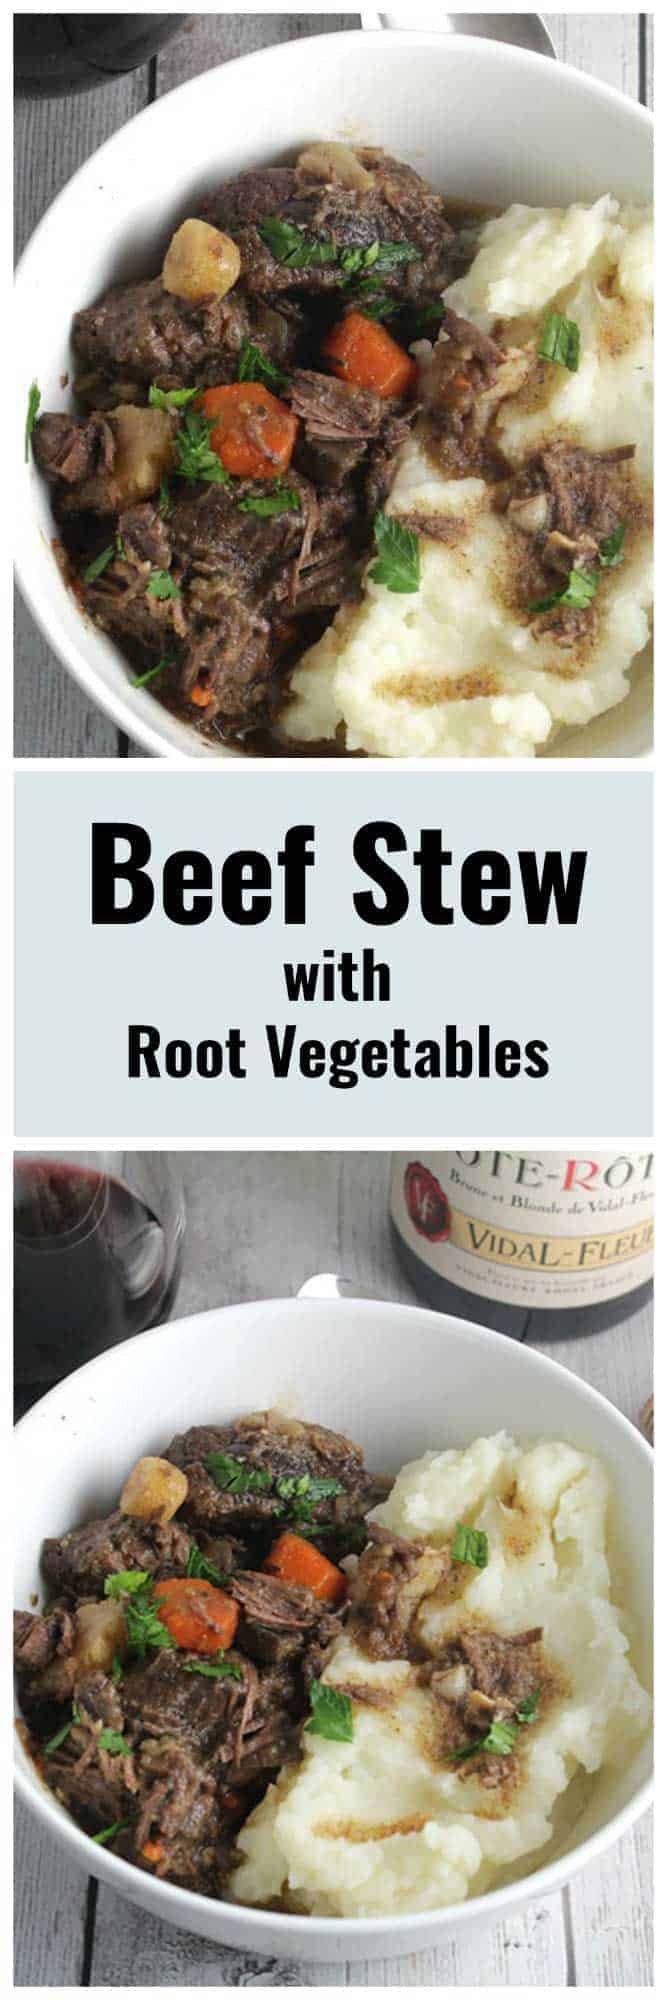 Beef Stew with Root Vegetables features fall apart tender meat and a succulent sauce, served with mashed potatoes for some serious comfort food. #beefstew #comfortfood #winepairing #sponsored